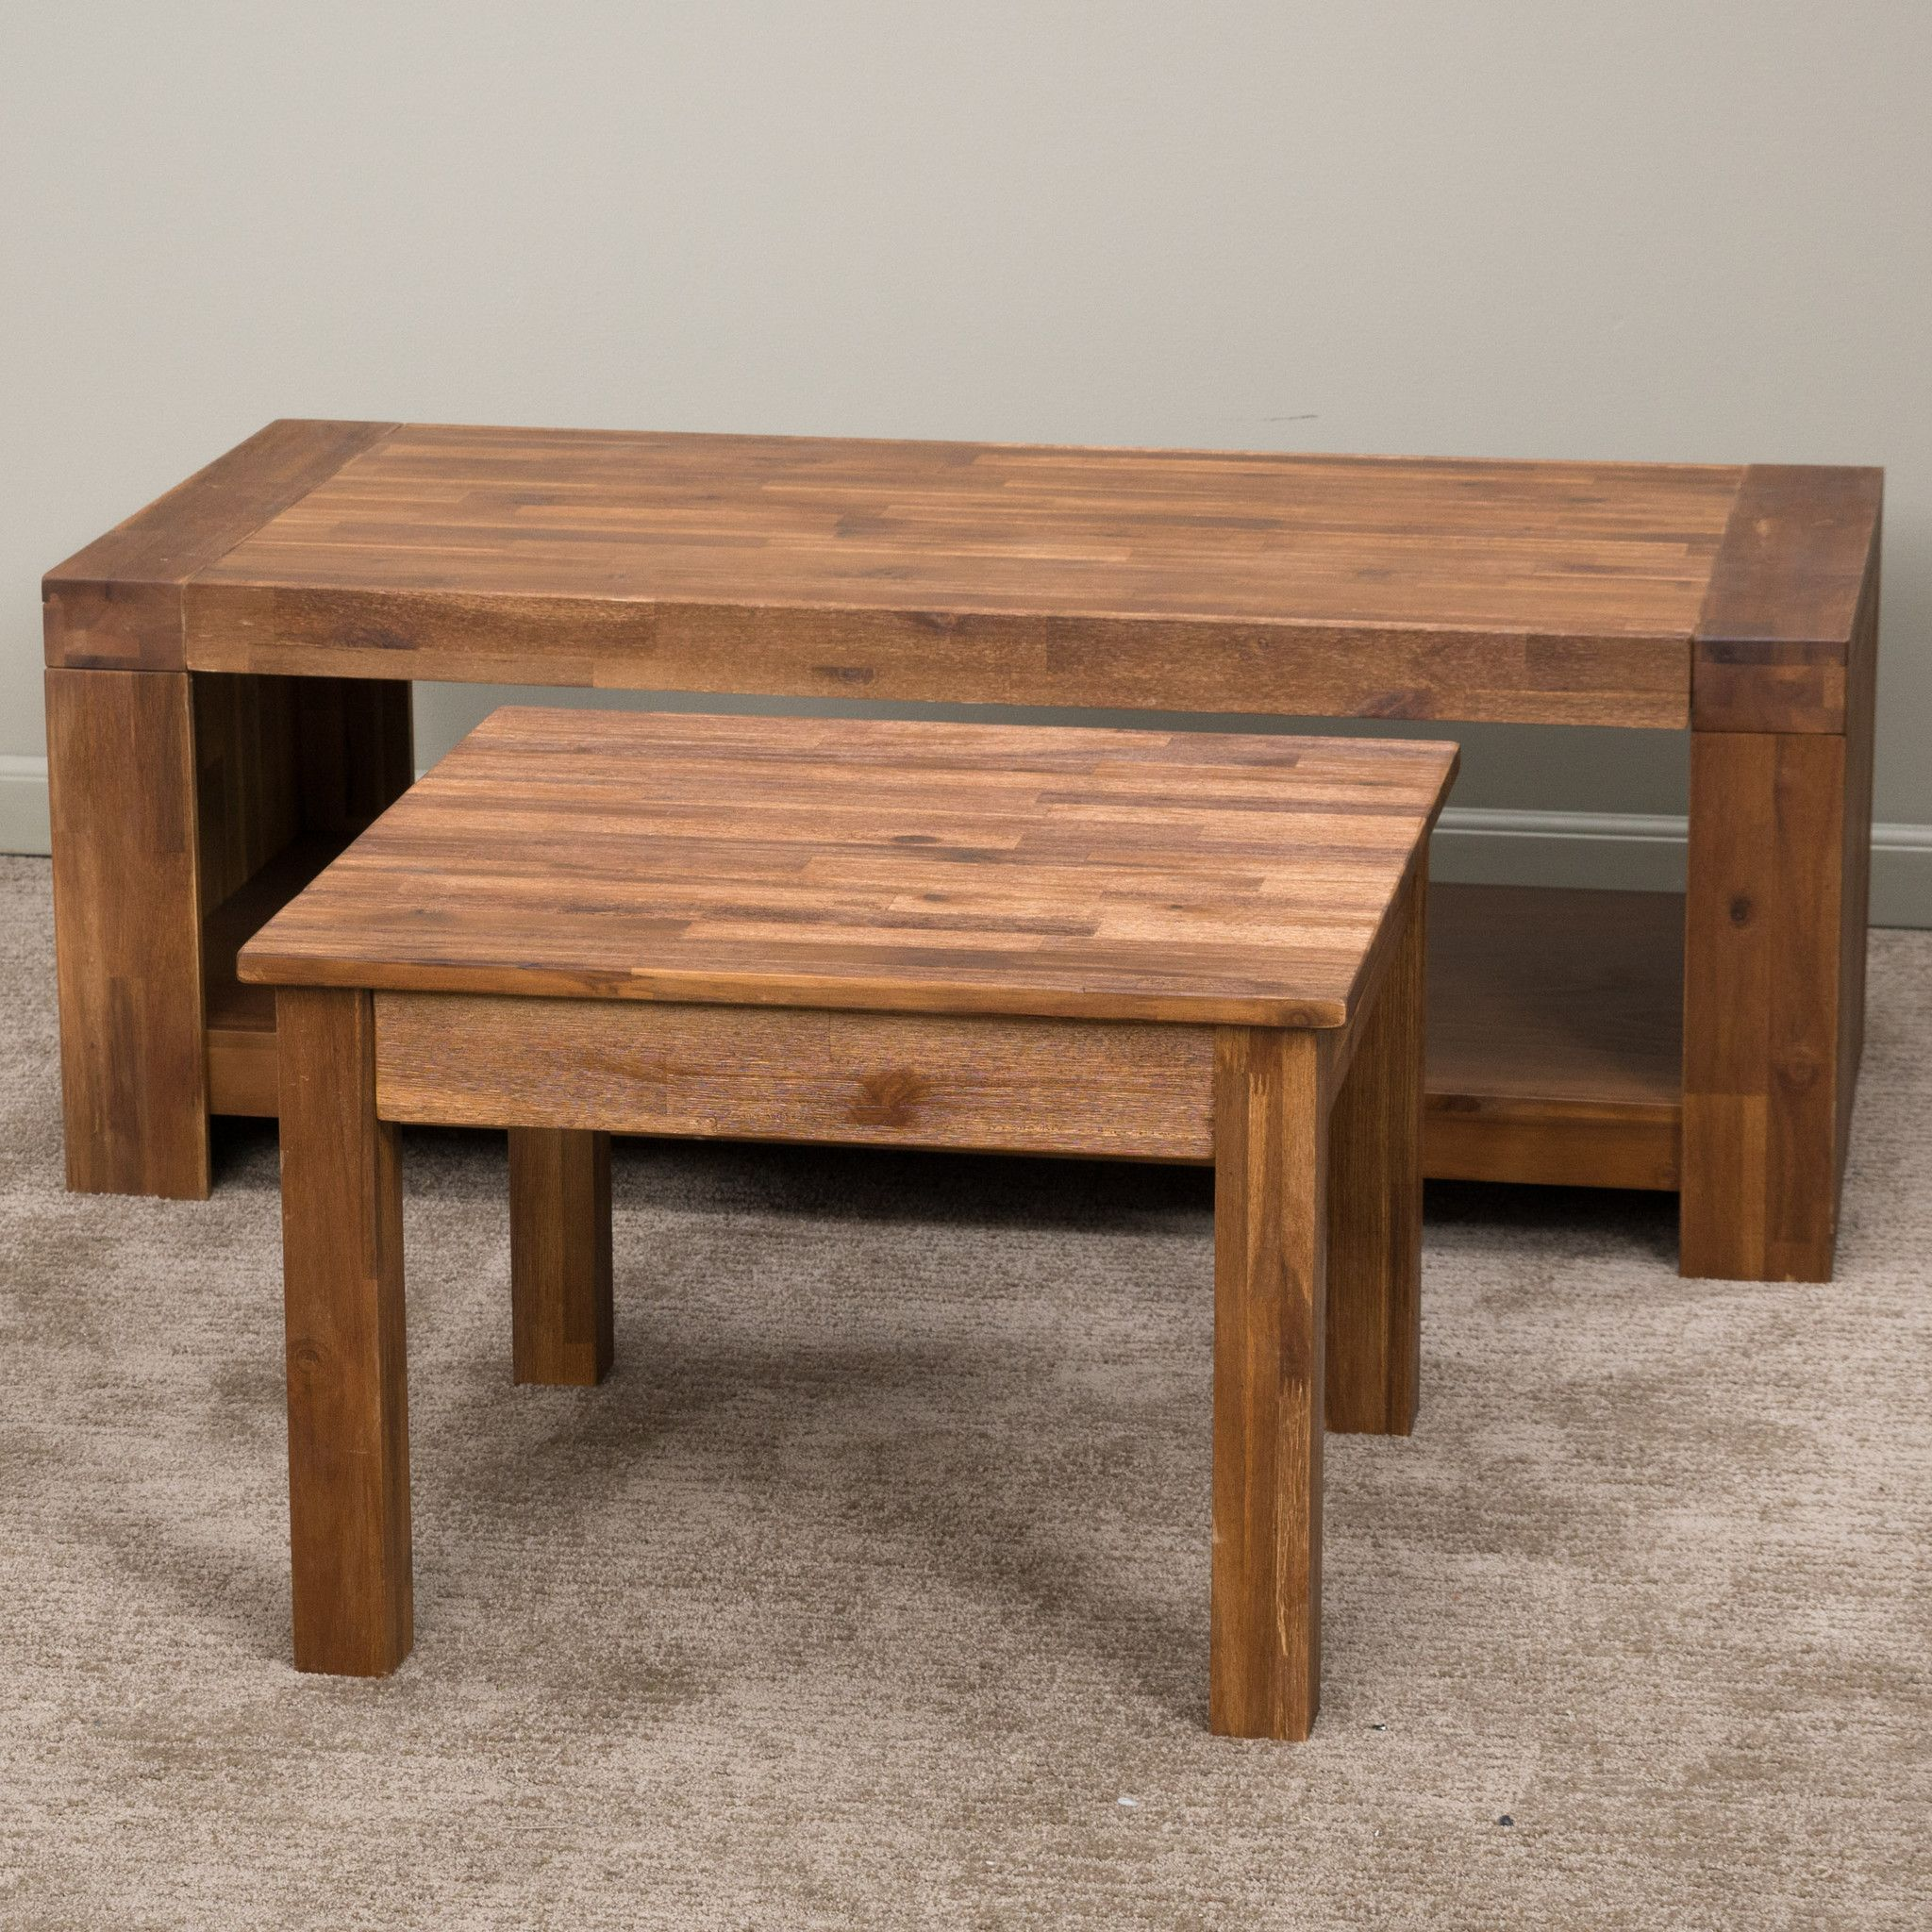 515 For Set Of 2 Christopher Knight Home Montero Coffee Table And Side Table  Set   Overstock Shopping   Great Deals On Coffee, Sofa U0026 End Tables